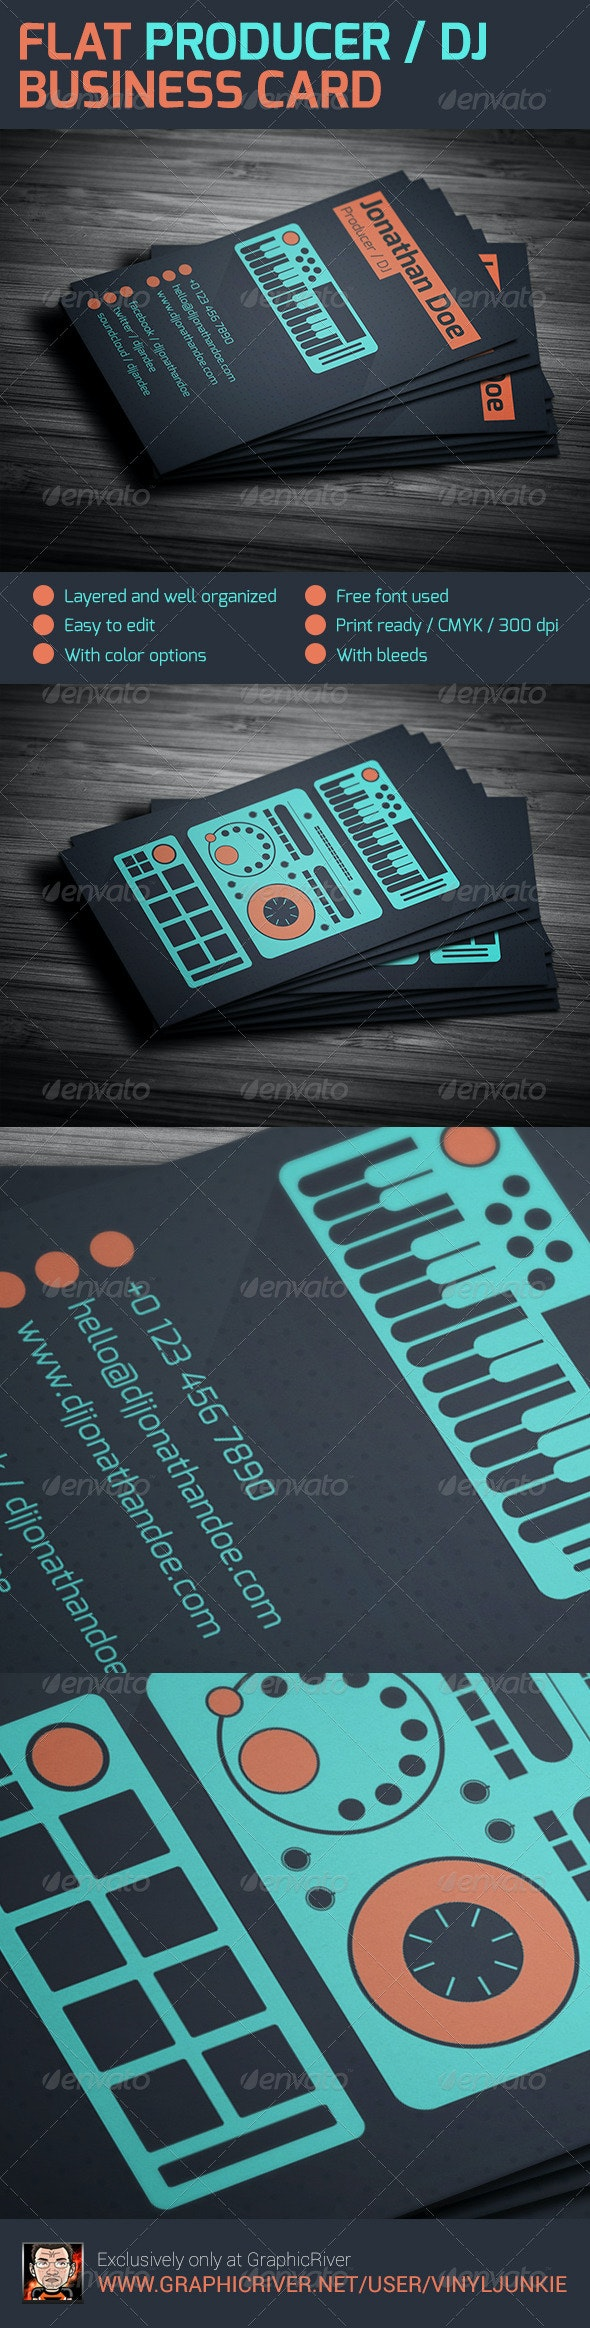 Flat Producer / DJ Business Card - Industry Specific Business Cards